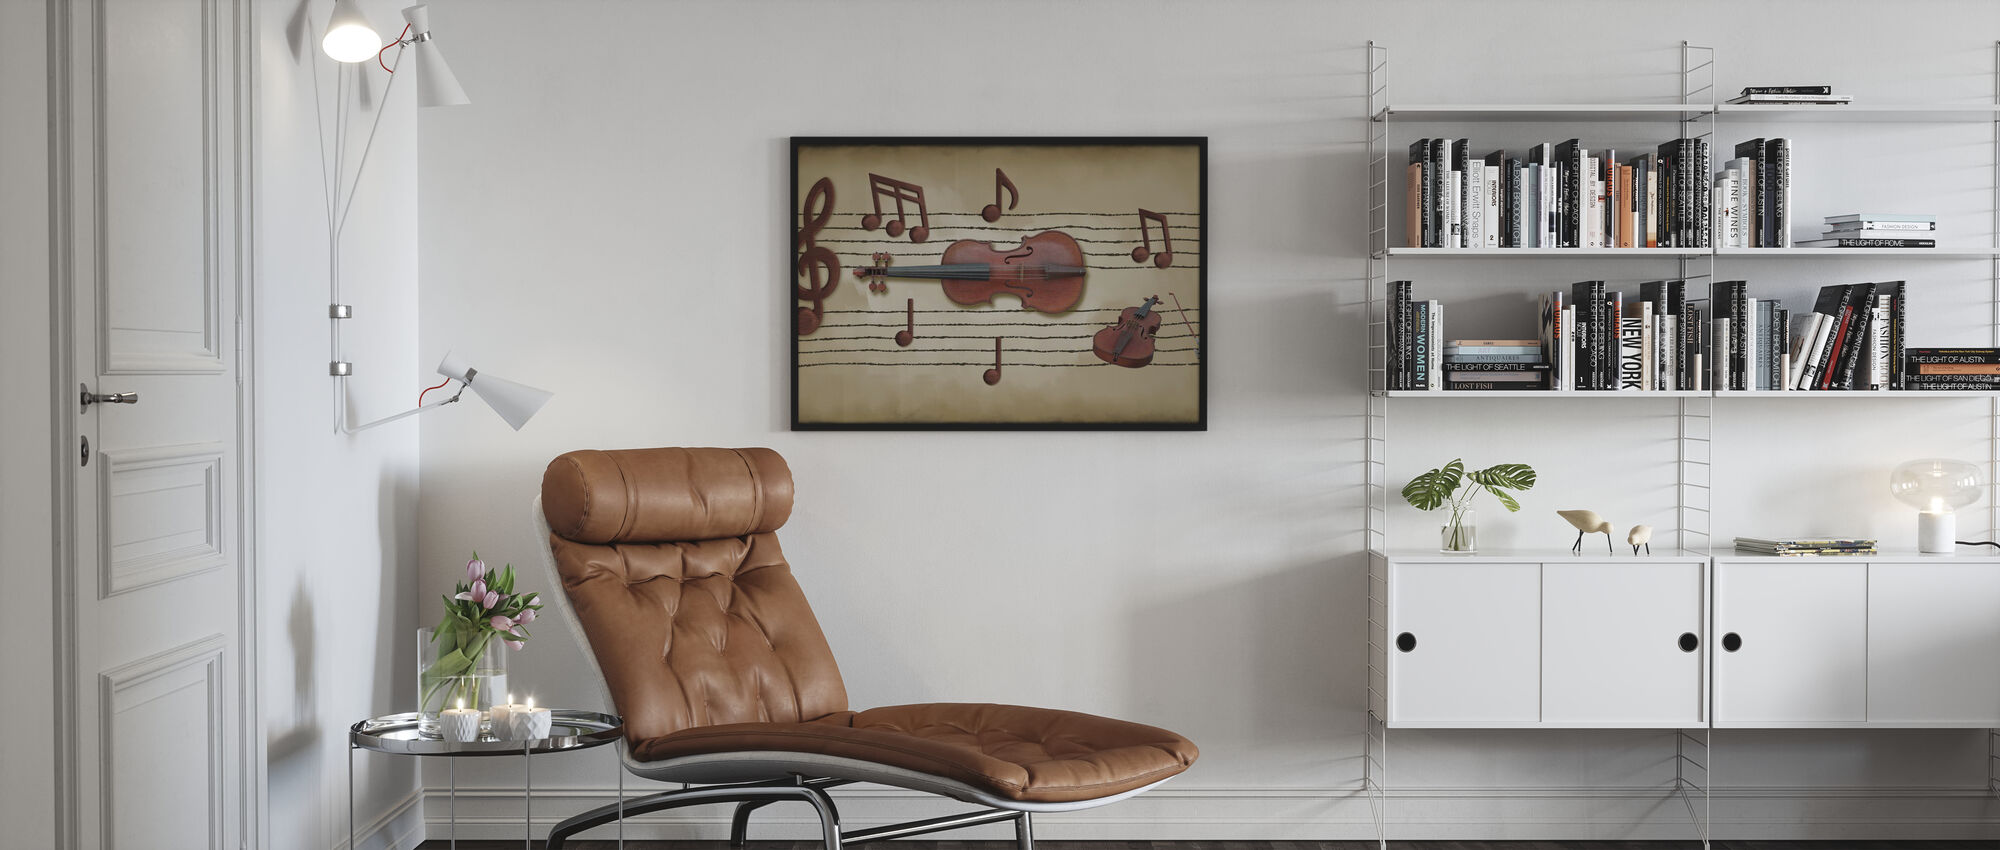 Making Notes - Poster - Living Room